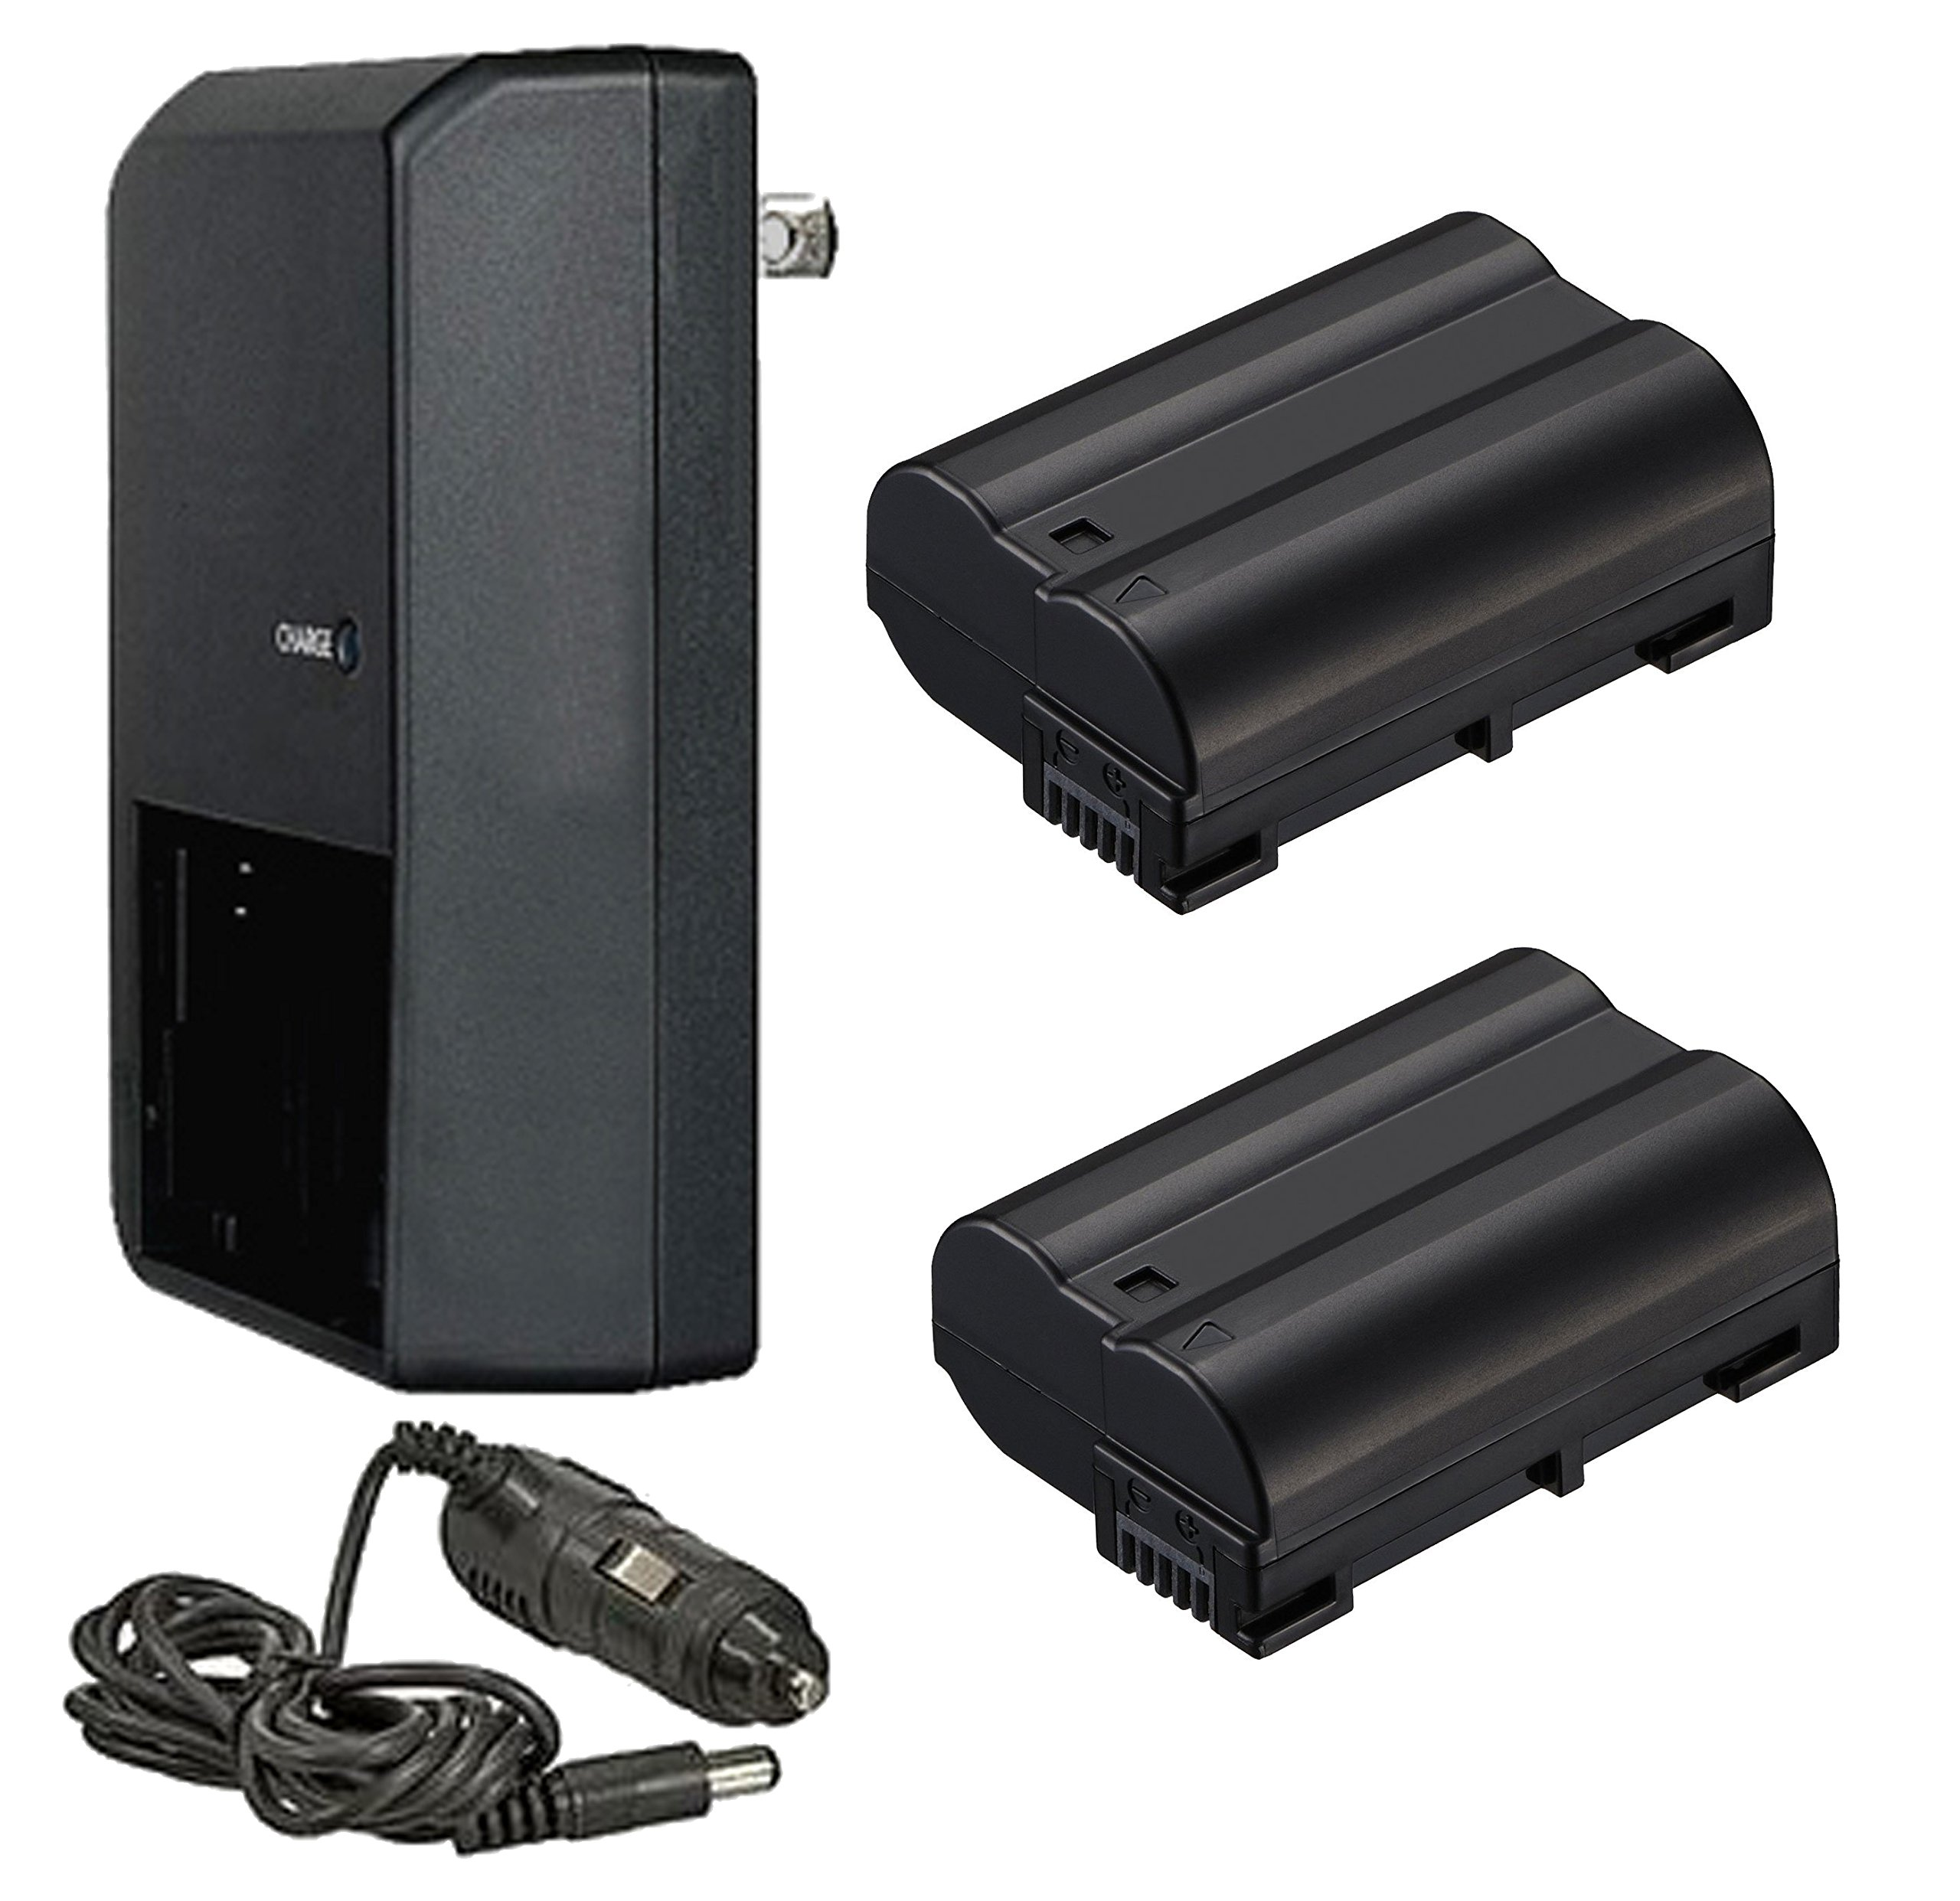 Nikon D850 High Capacity 'Intelligent' Batteries (2 Units) + AC/DC Travel Charger + Nwv Direct Microfiber Cleaning Cloth.